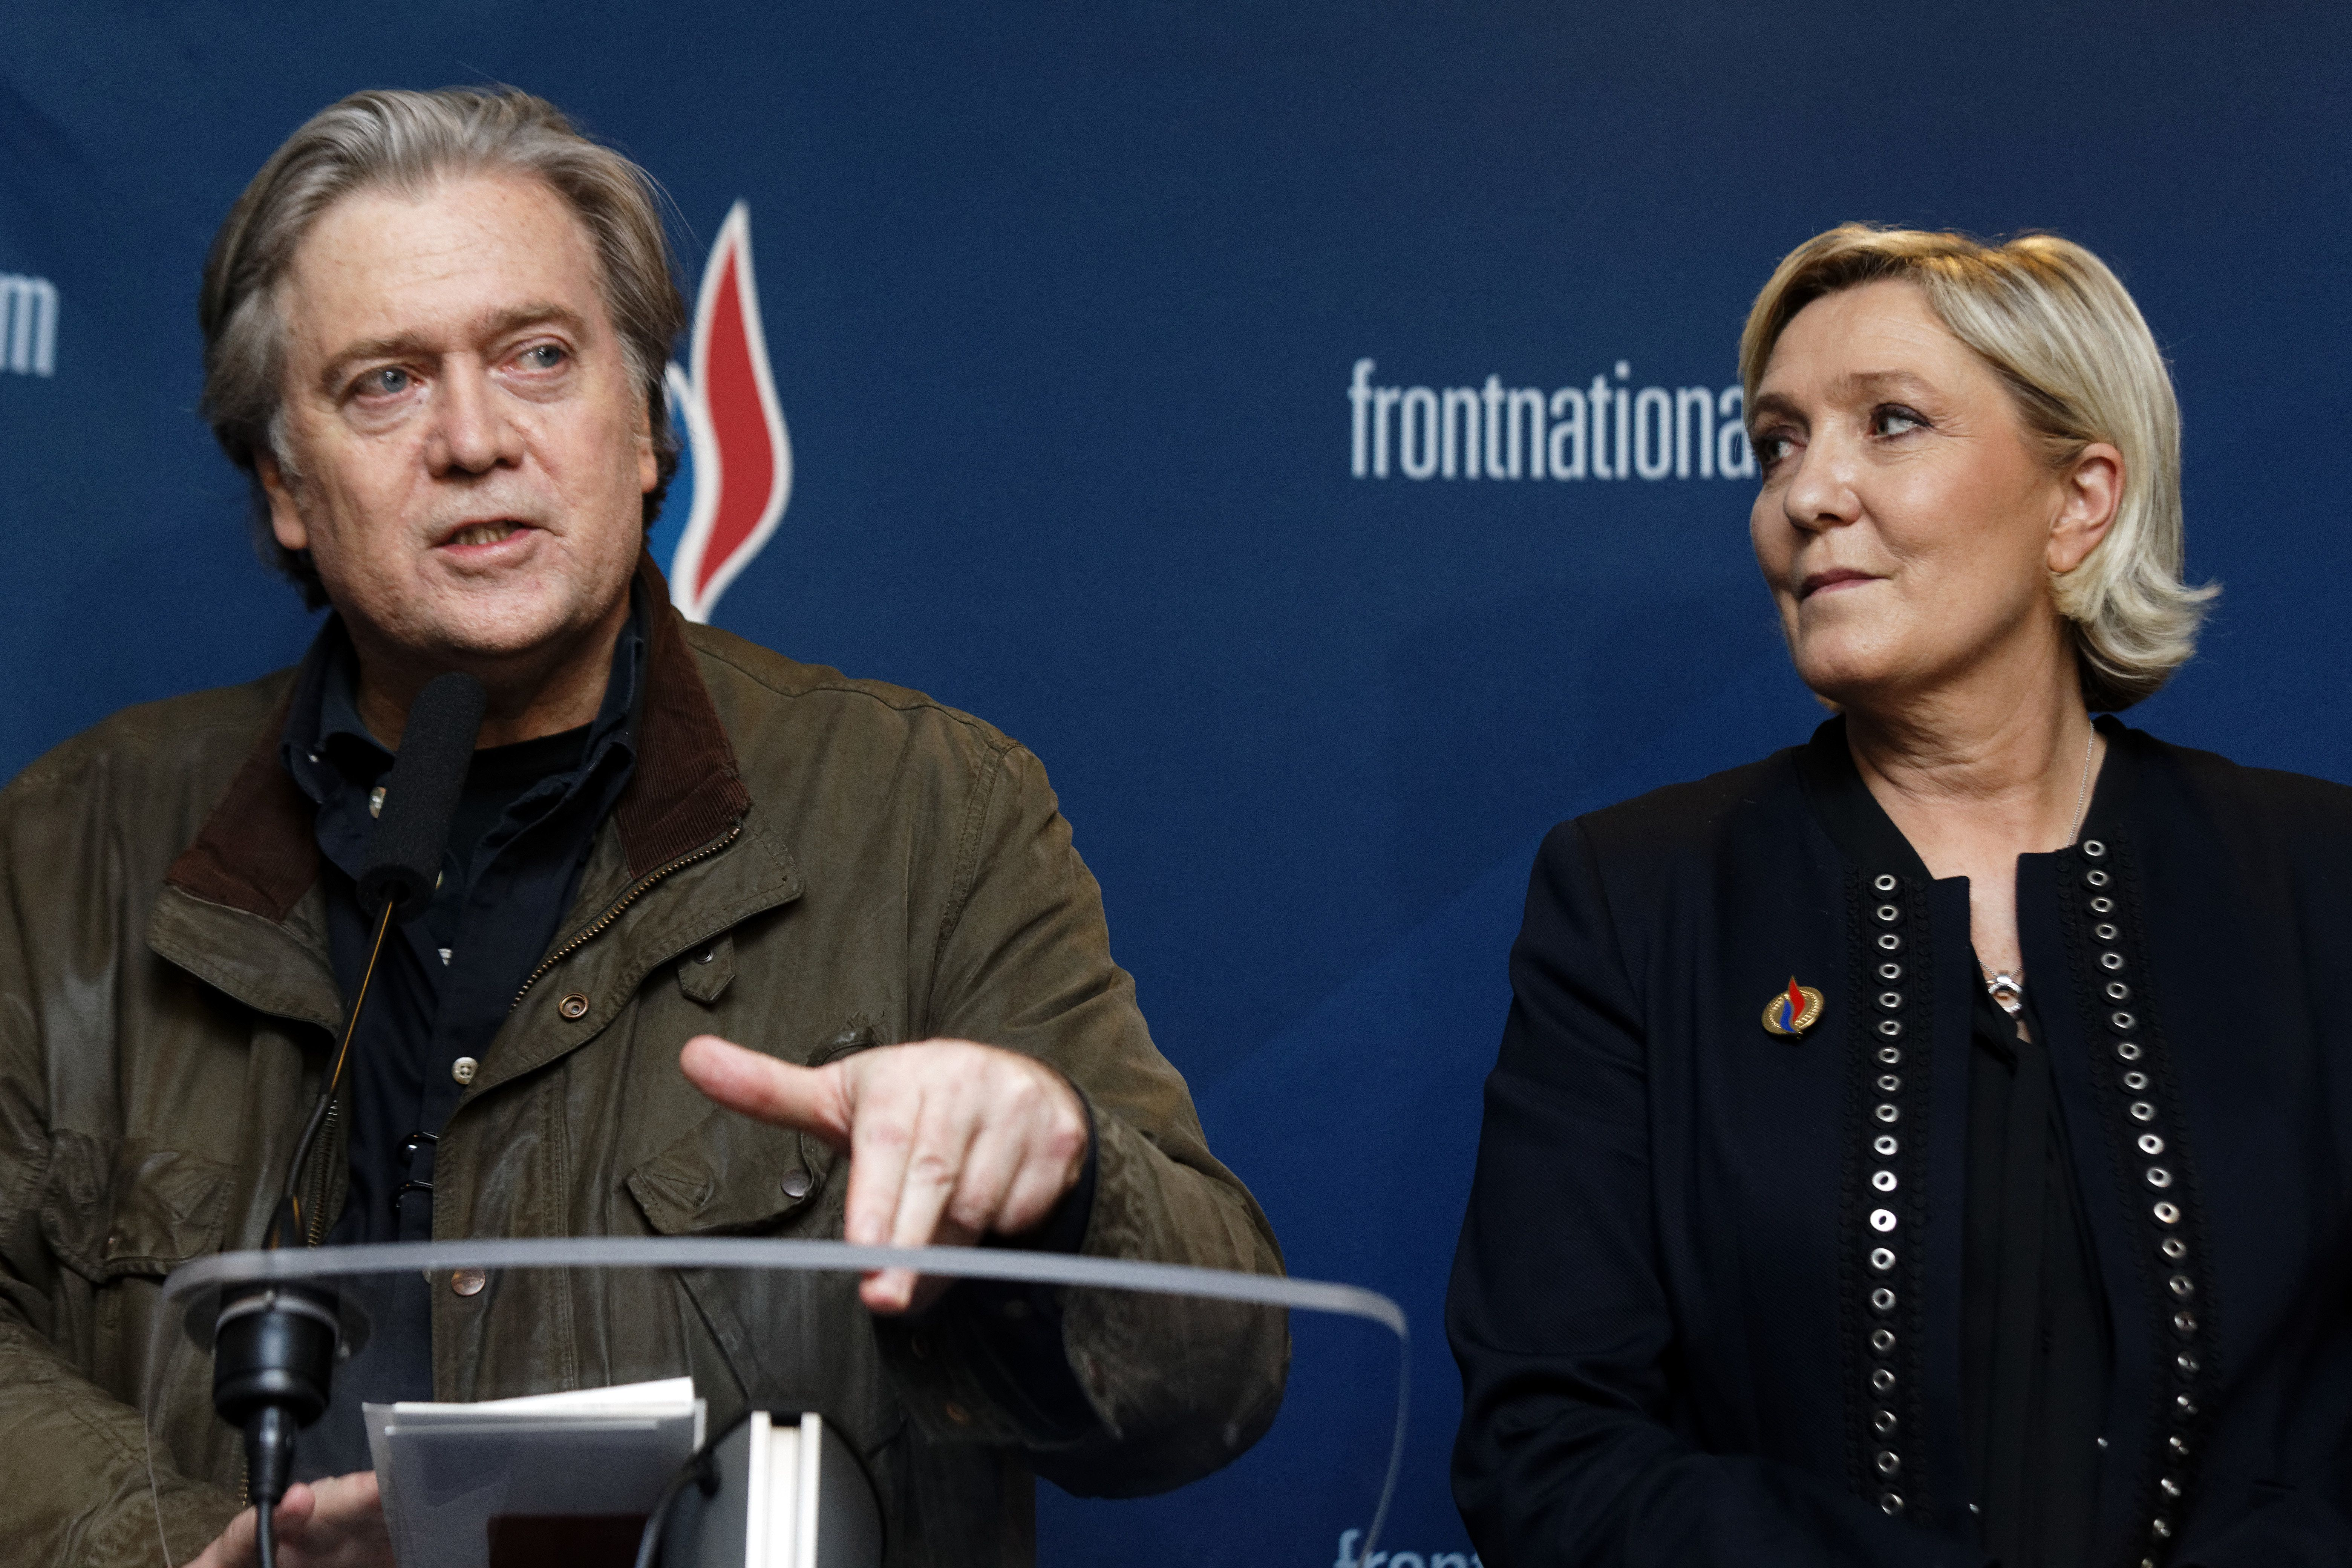 Steve Bannon Plans Far-Right Foundation In